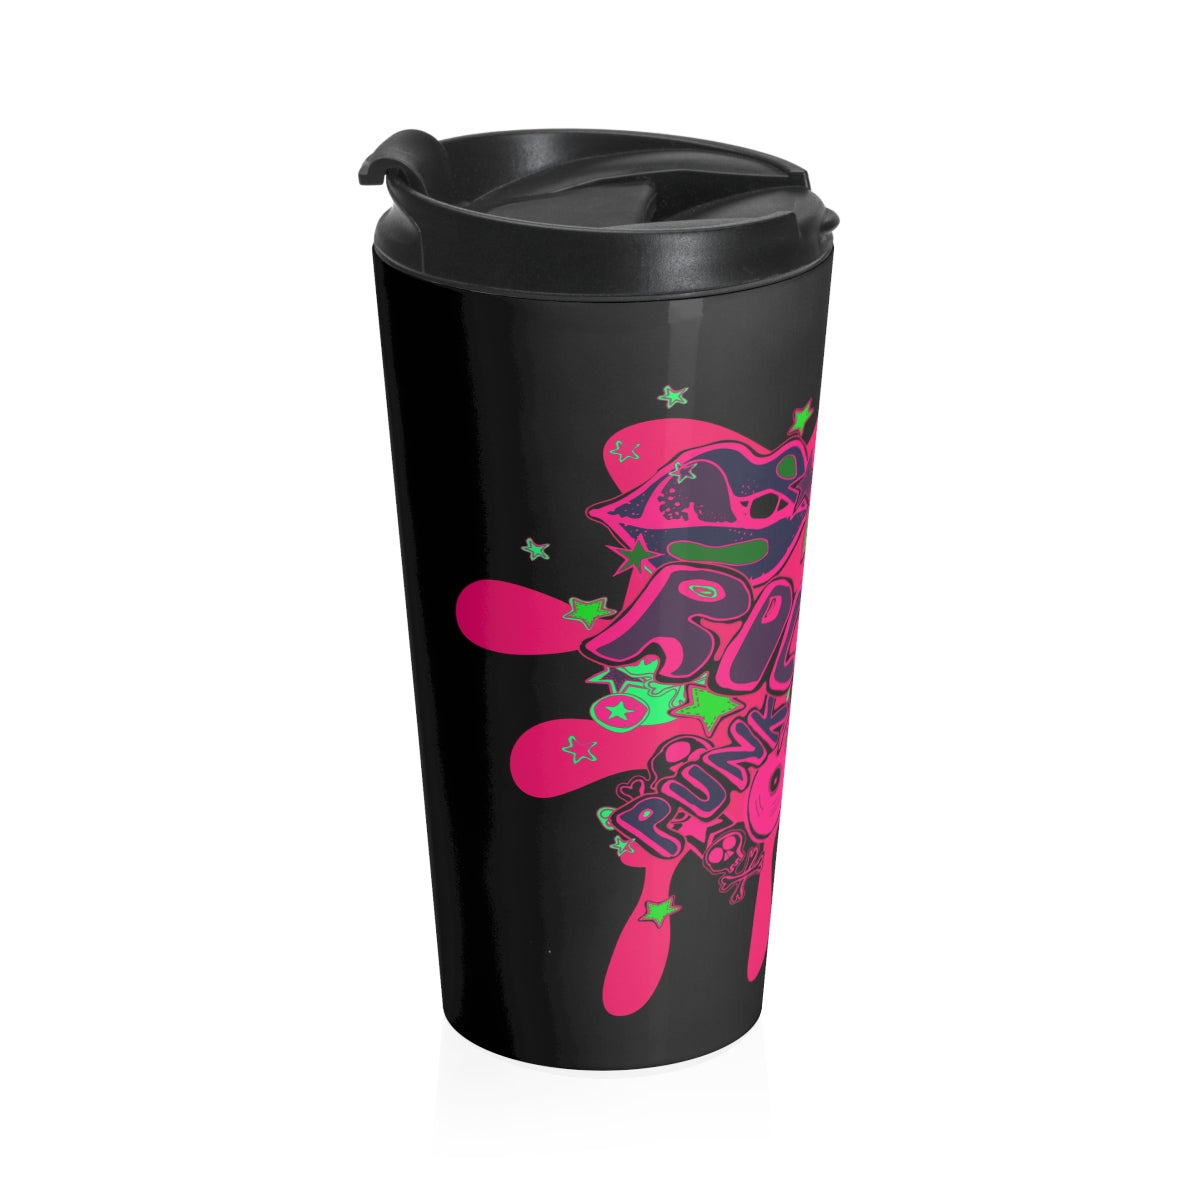 Punk Rock/Stainless Steel Travel Mug